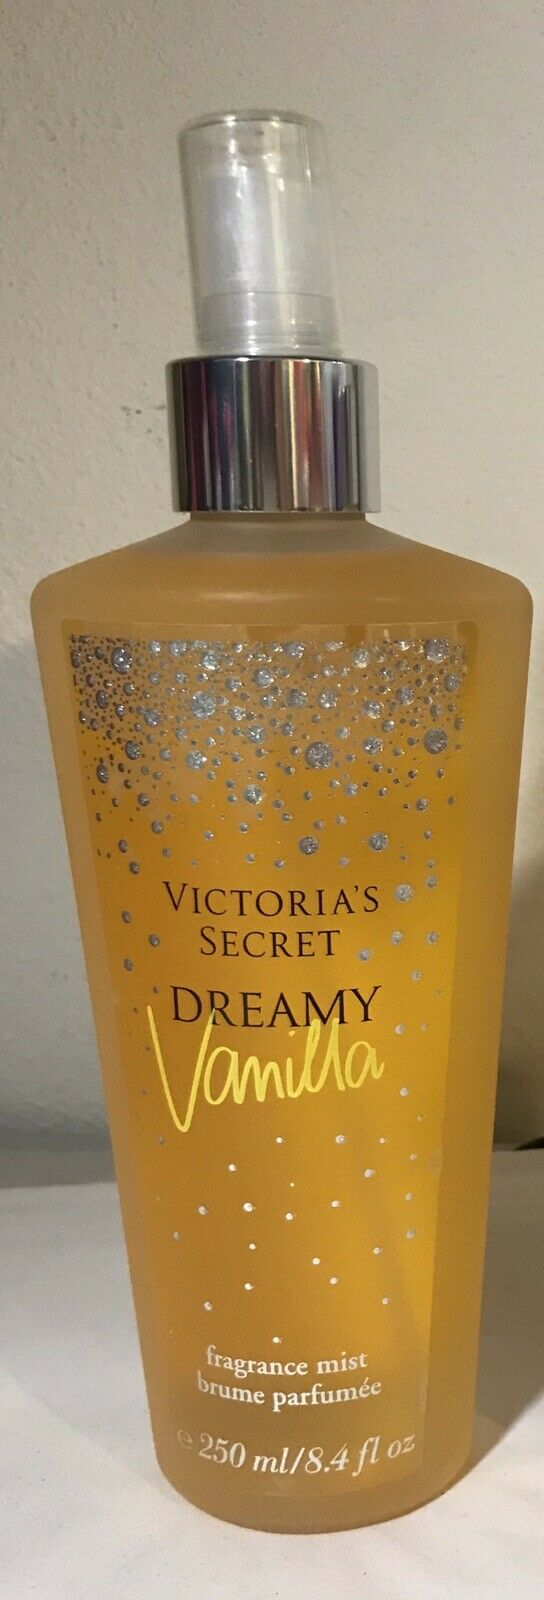 3fe3516eddbb7 Victoria's Secret Dreamy Vanilla Fragrance Mist 8.4 FL Oz